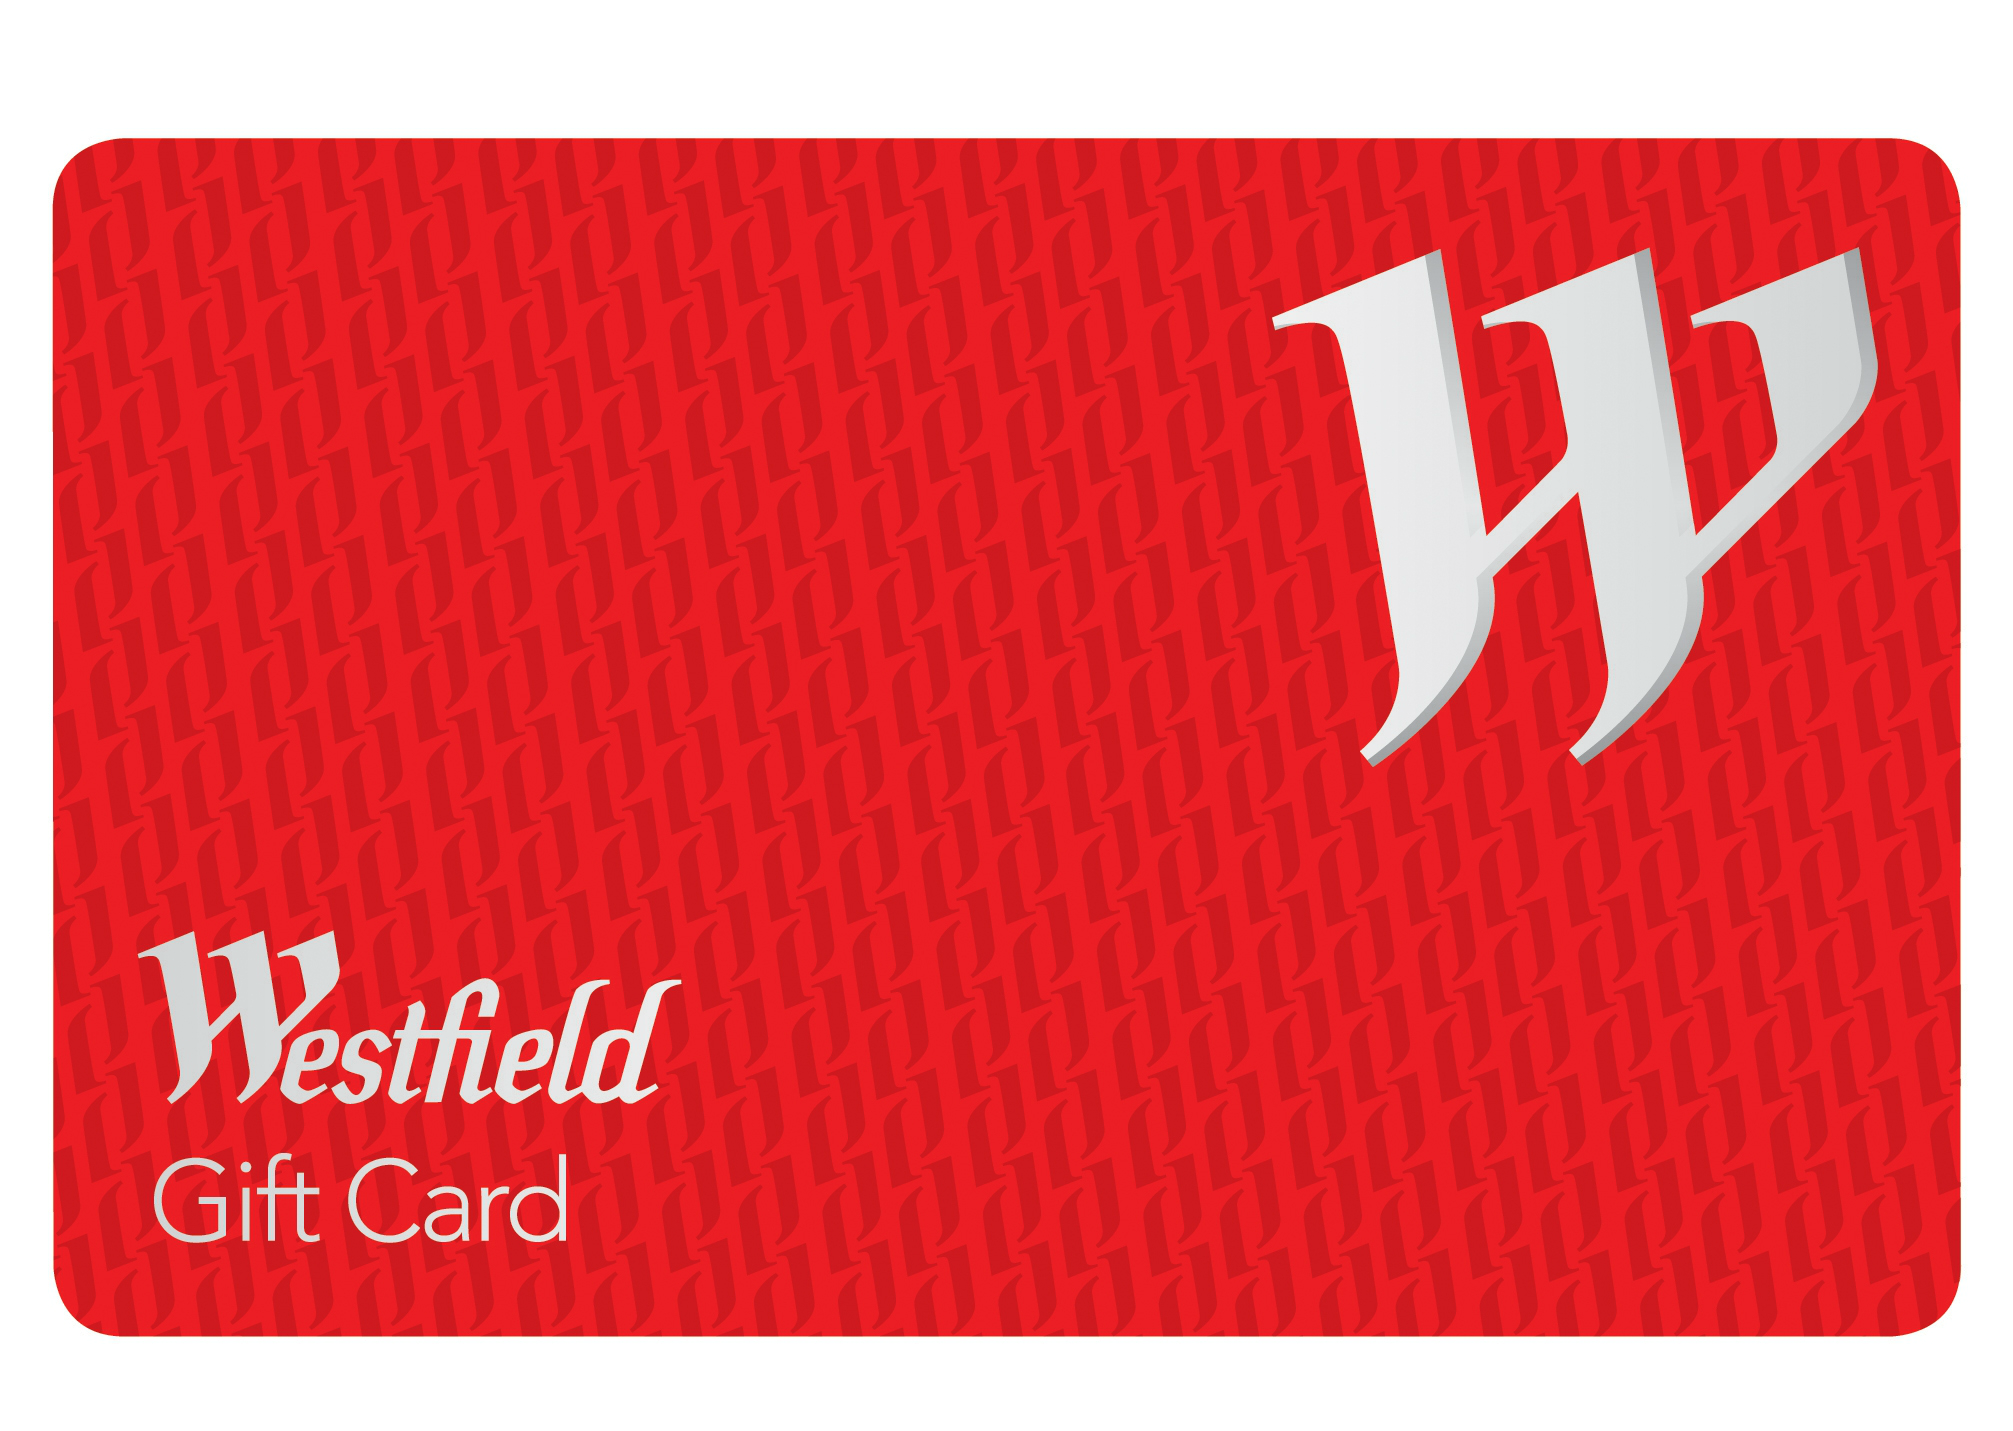 Westfield Gift Cards may be spent at any Westfield retailer in any Westfield Shopping Centre that accepts Maestro. Retailers simply process Westfield Gift Cards in exactly the same way as any other credit or debit card (no chip & pin – signature required).